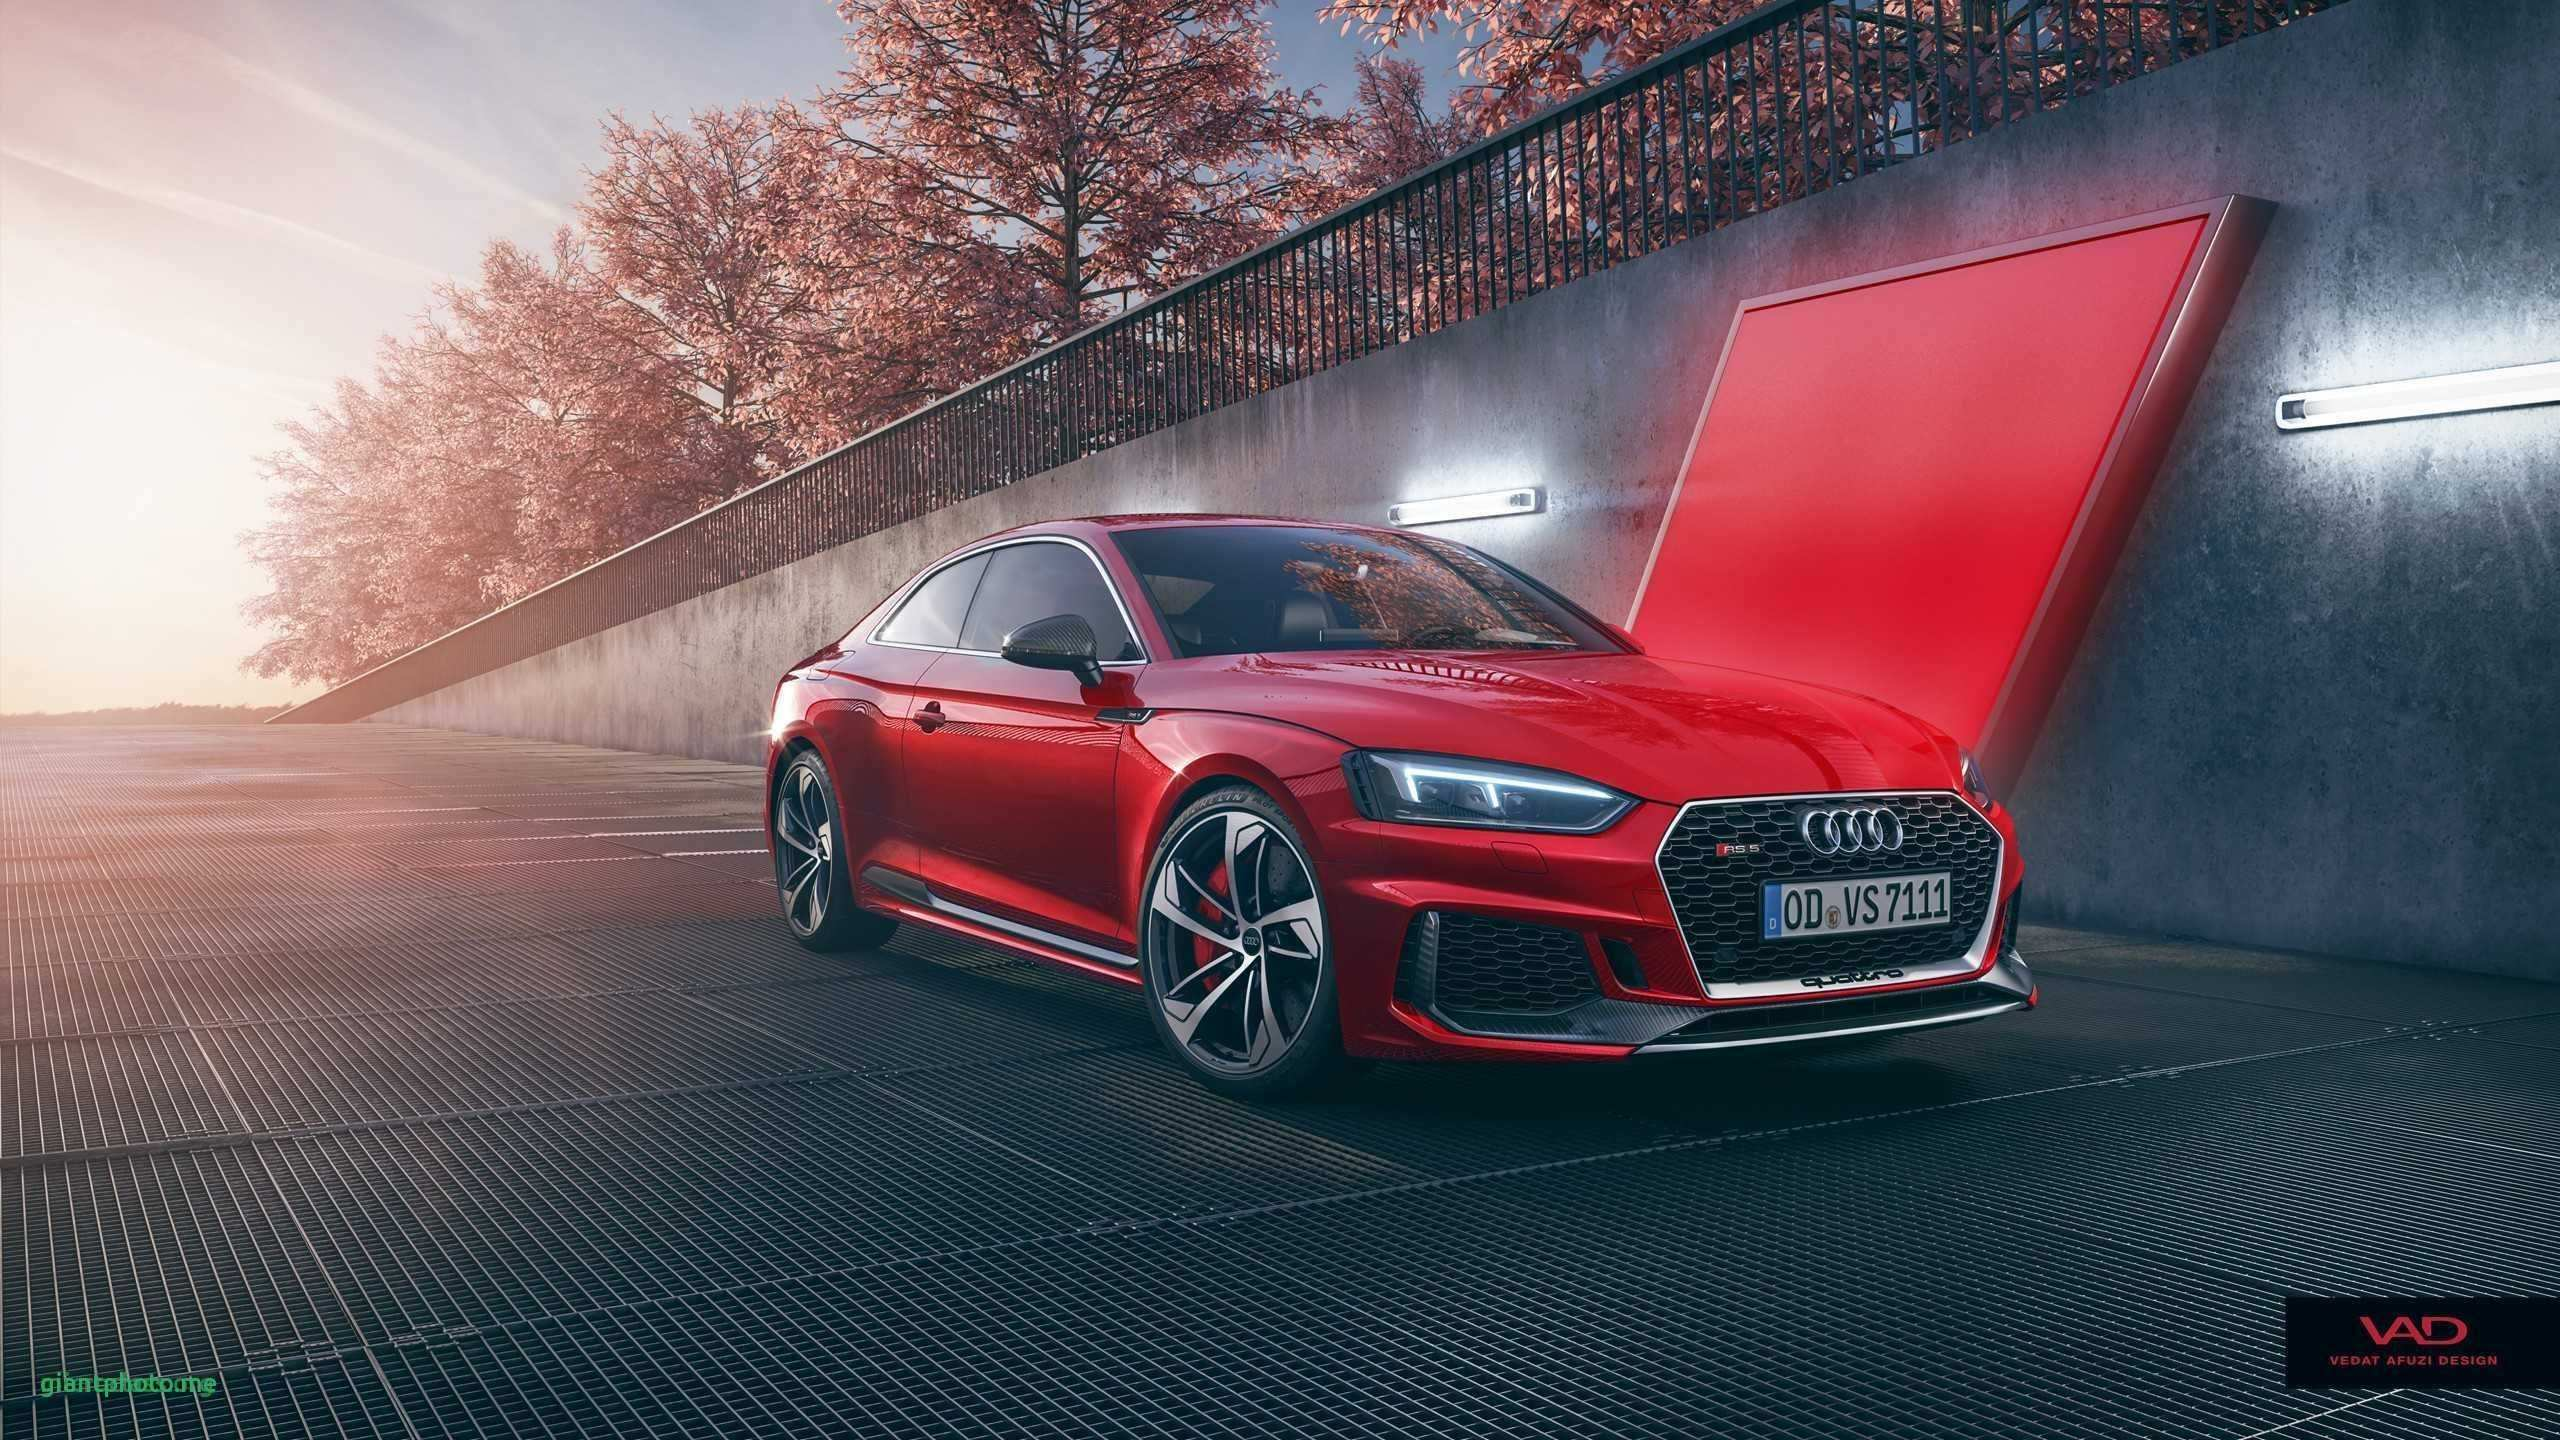 21 All New 2020 Audi Rs5 Tdi Release Date with 2020 Audi Rs5 Tdi